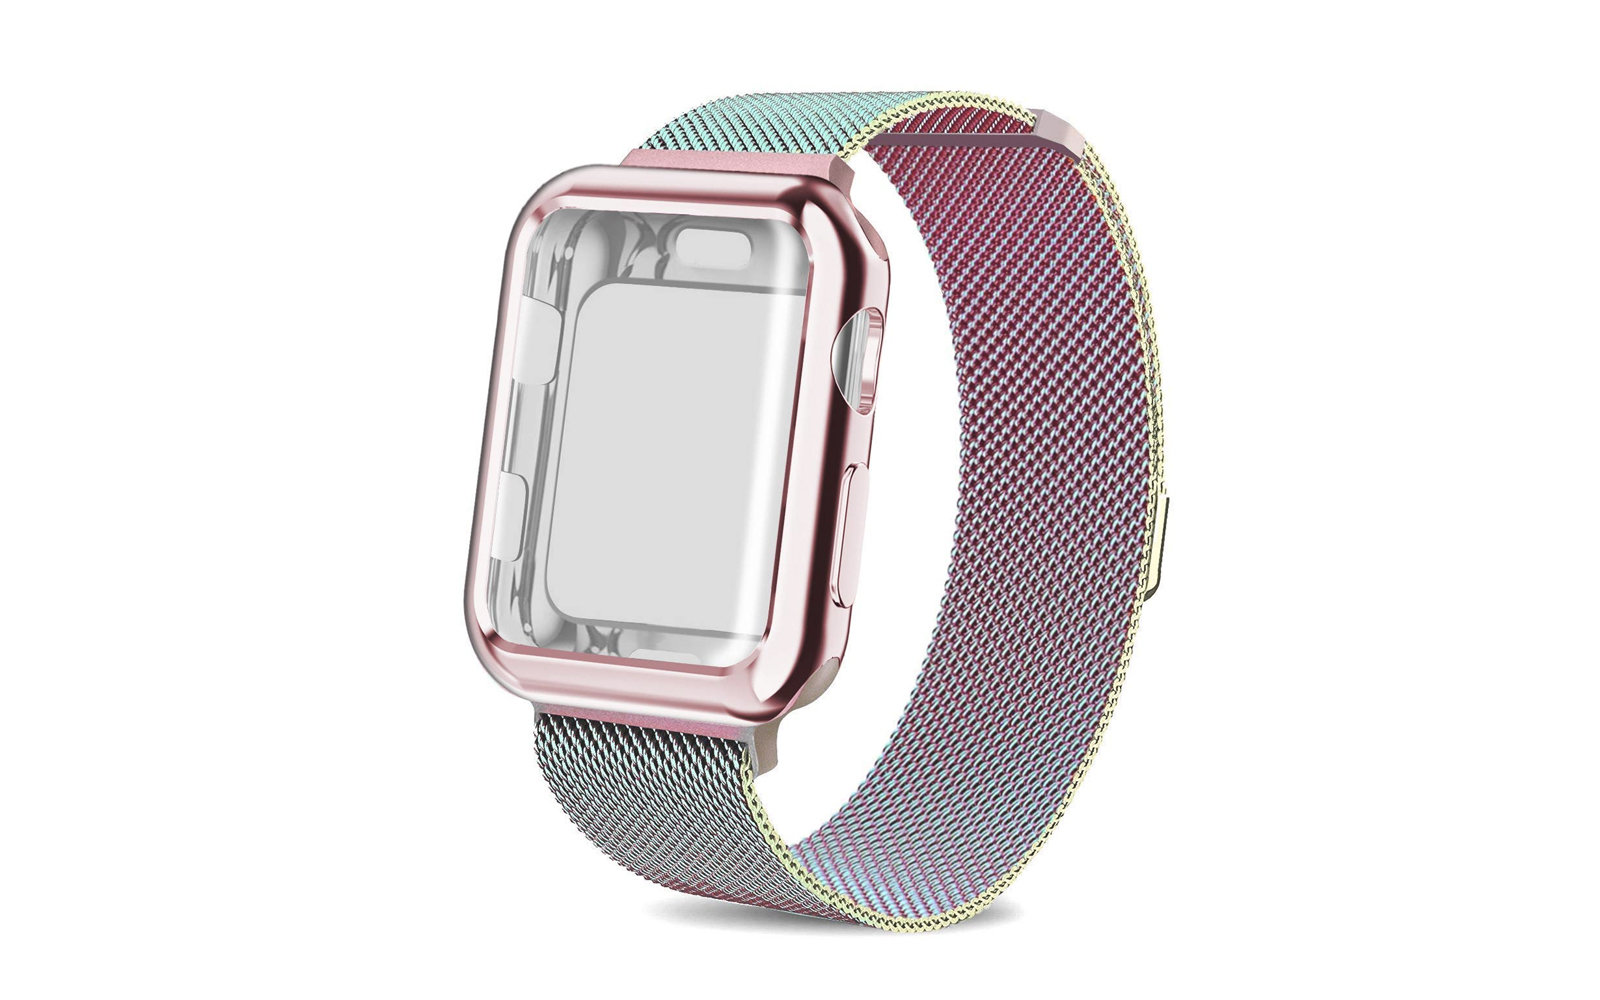 AdMaster Stainless Steel Mesh Apple Watch Band with Cover Case